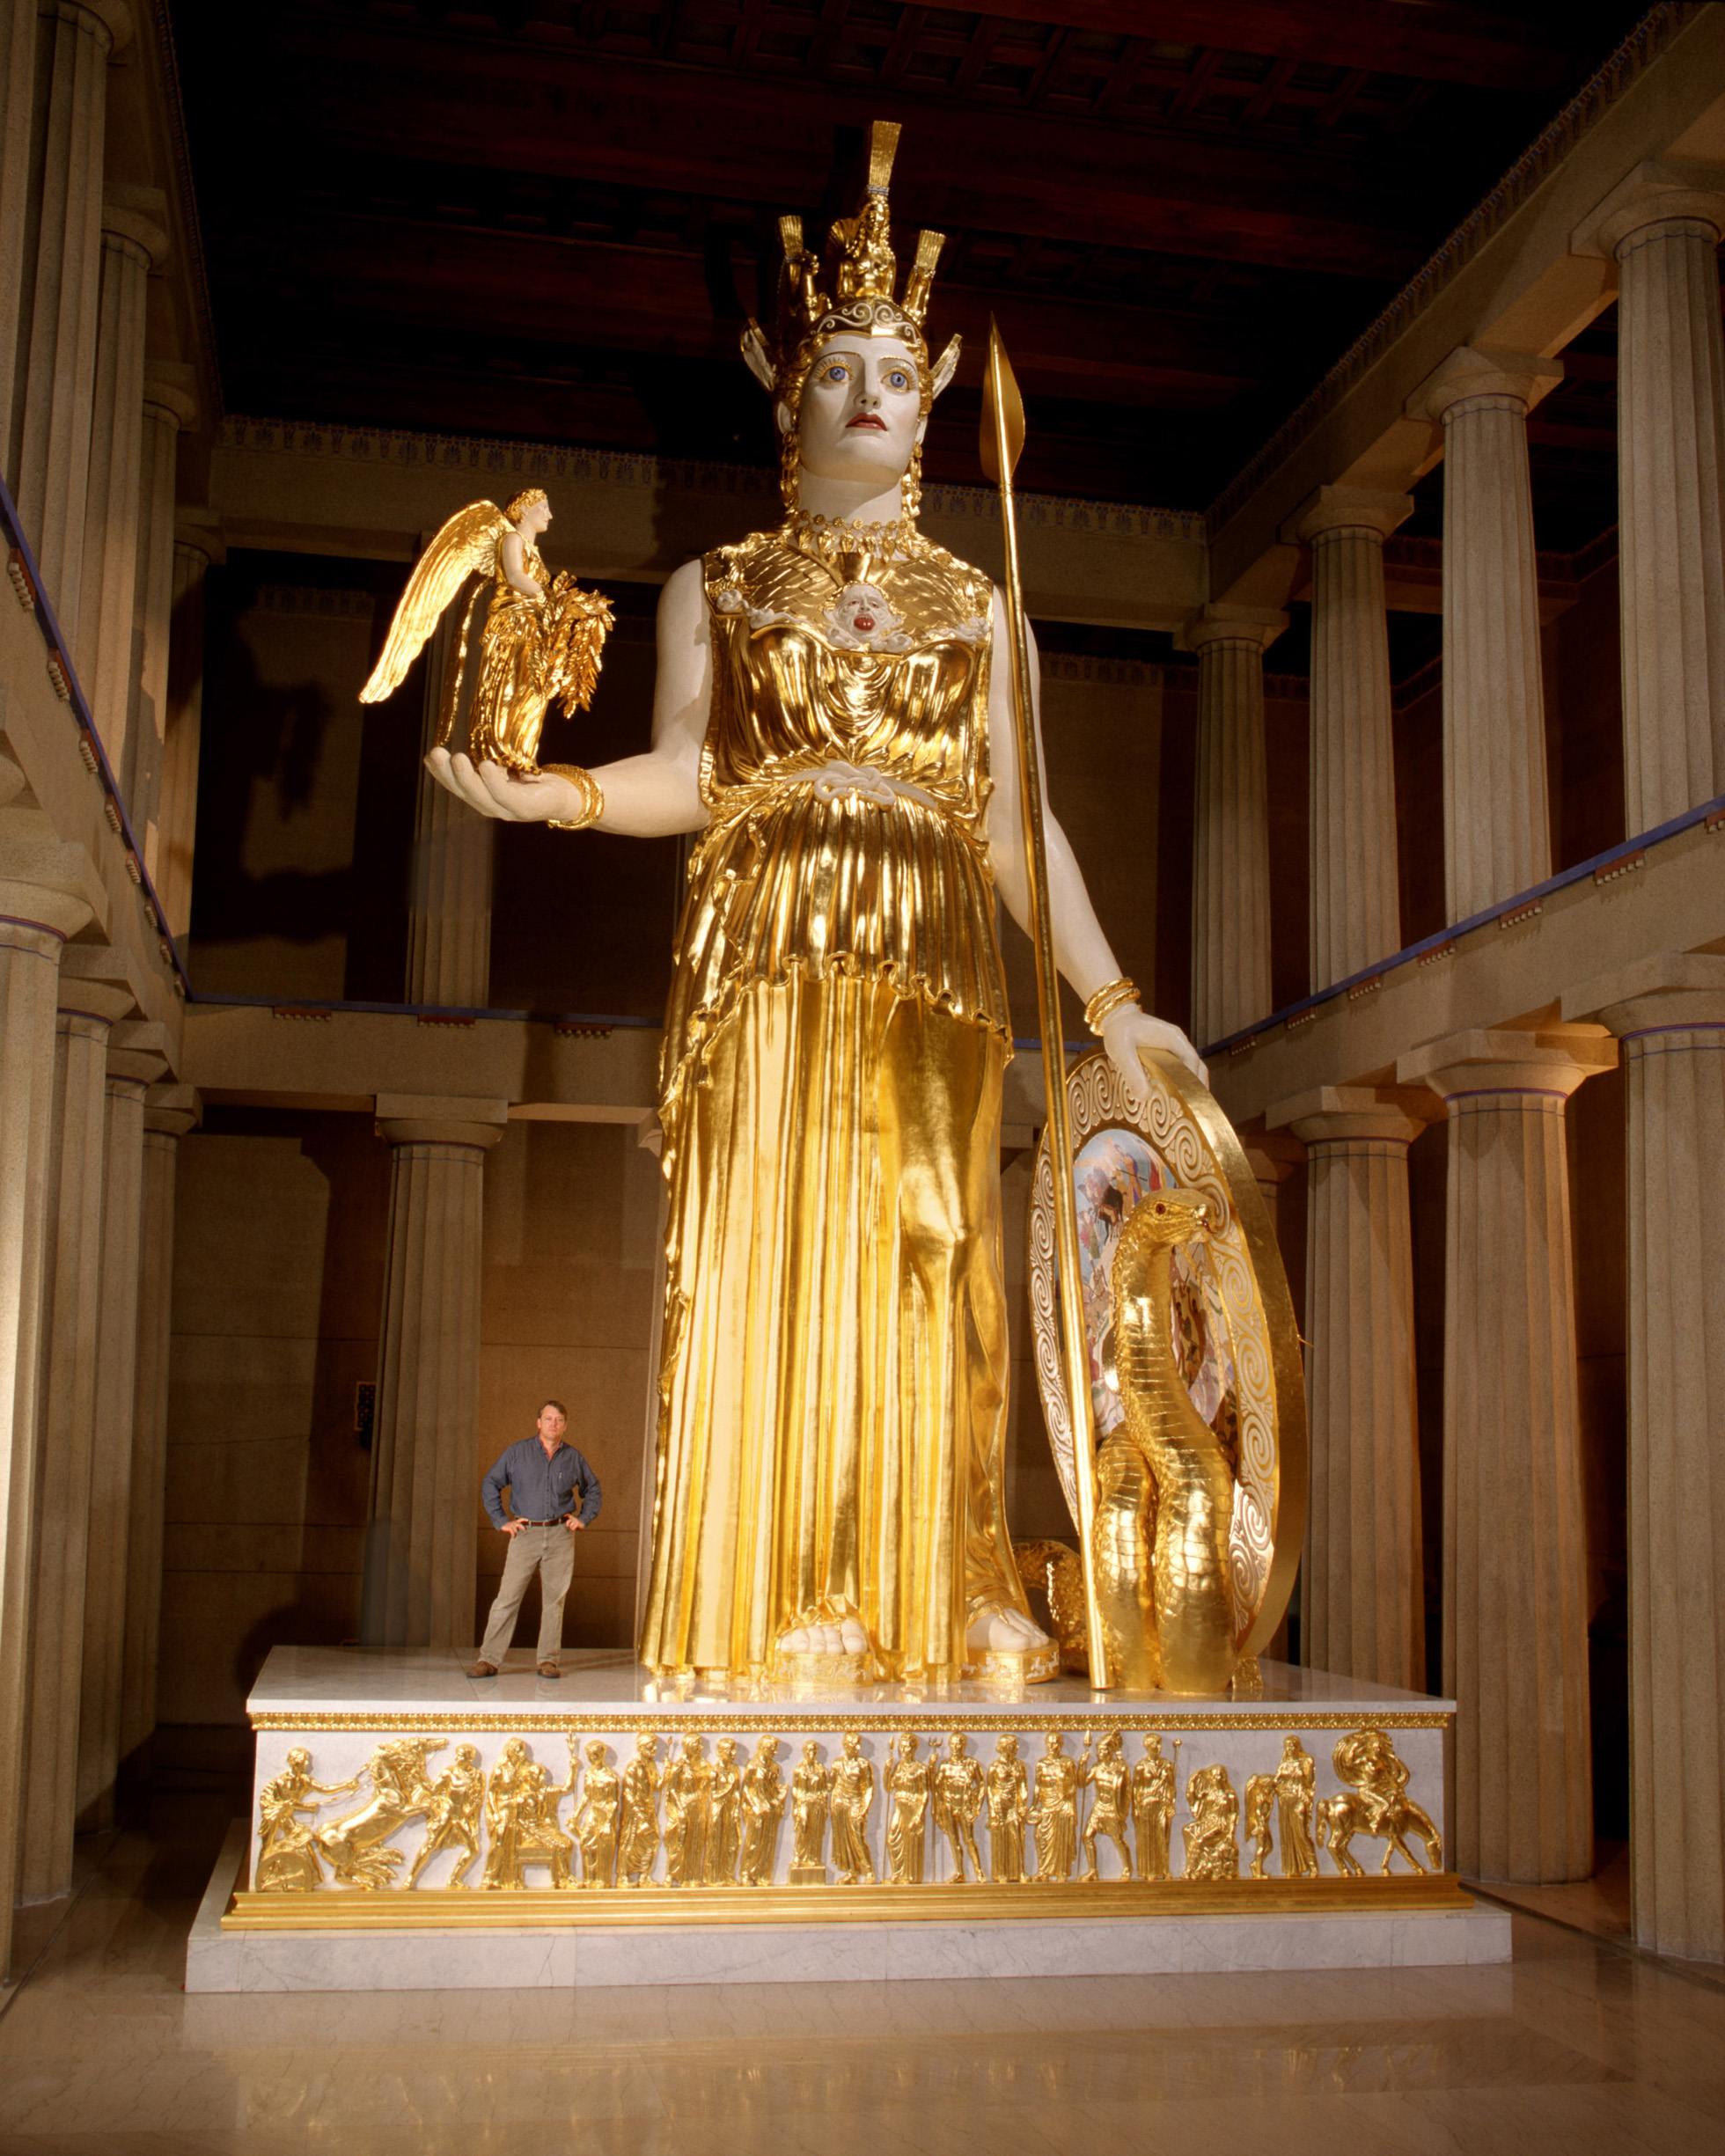 An introduction to the Parthenon and its sculptures – The